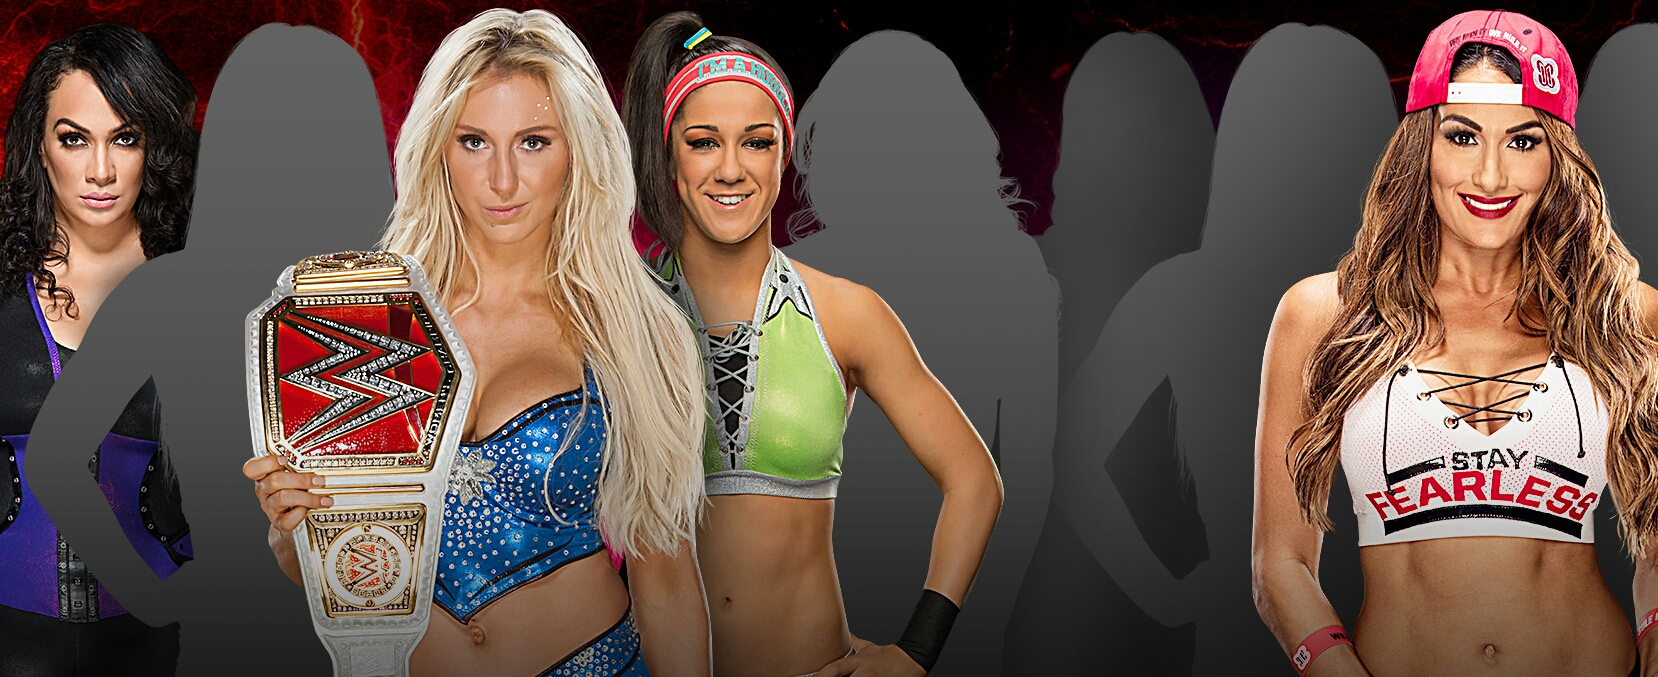 20161031_Match_SurvivorSeries_SD_Women_2--8683c04956d8aa894db11c2366566fa5-1